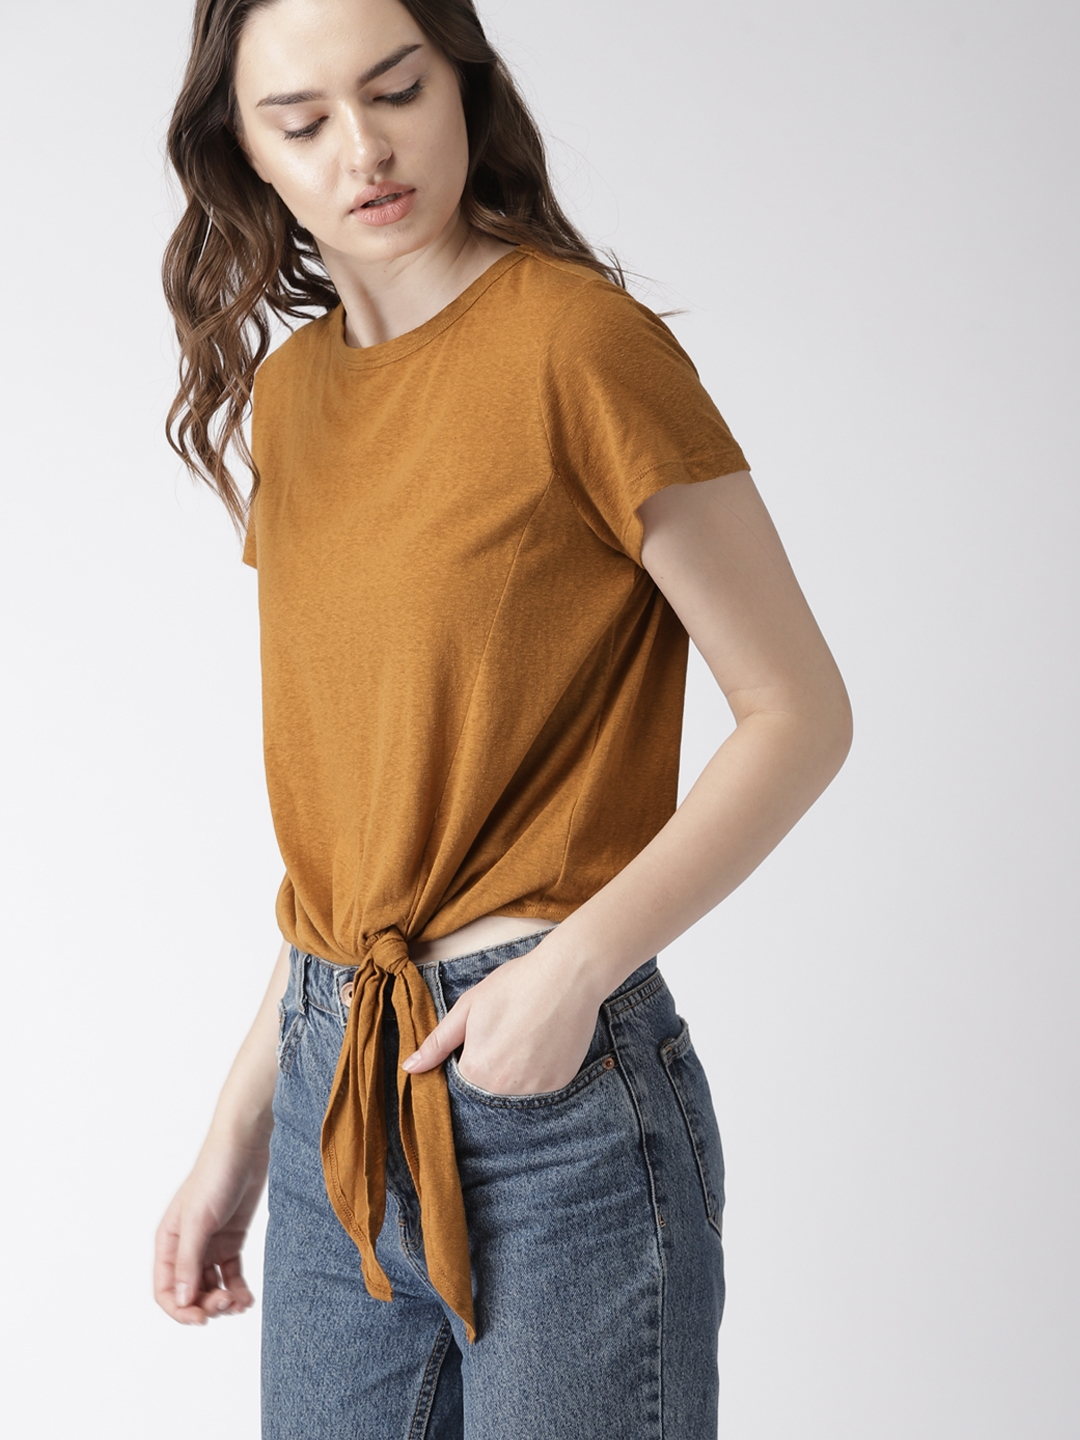 1857c7cbe64a0c Buy FOREVER 21 Women Mustard Brown Solid Top - Tops for Women ...